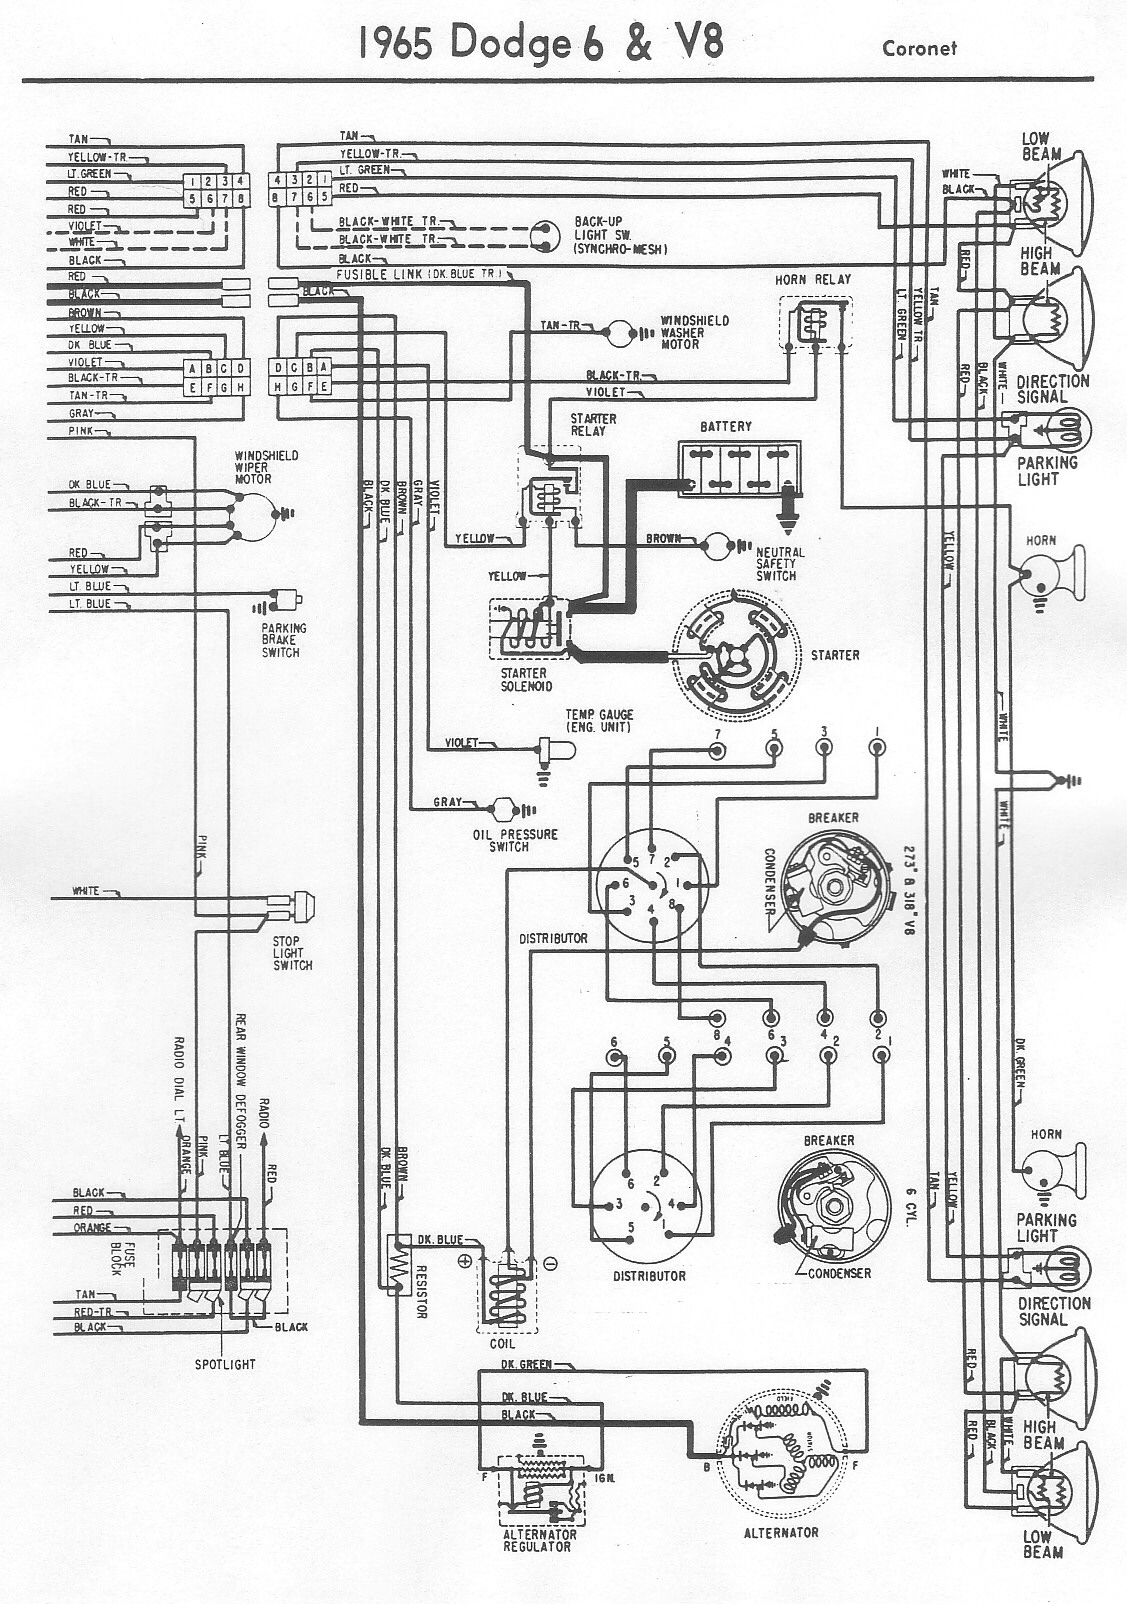 1964 Dodge Dart Wiring Diagram | Wiring Library